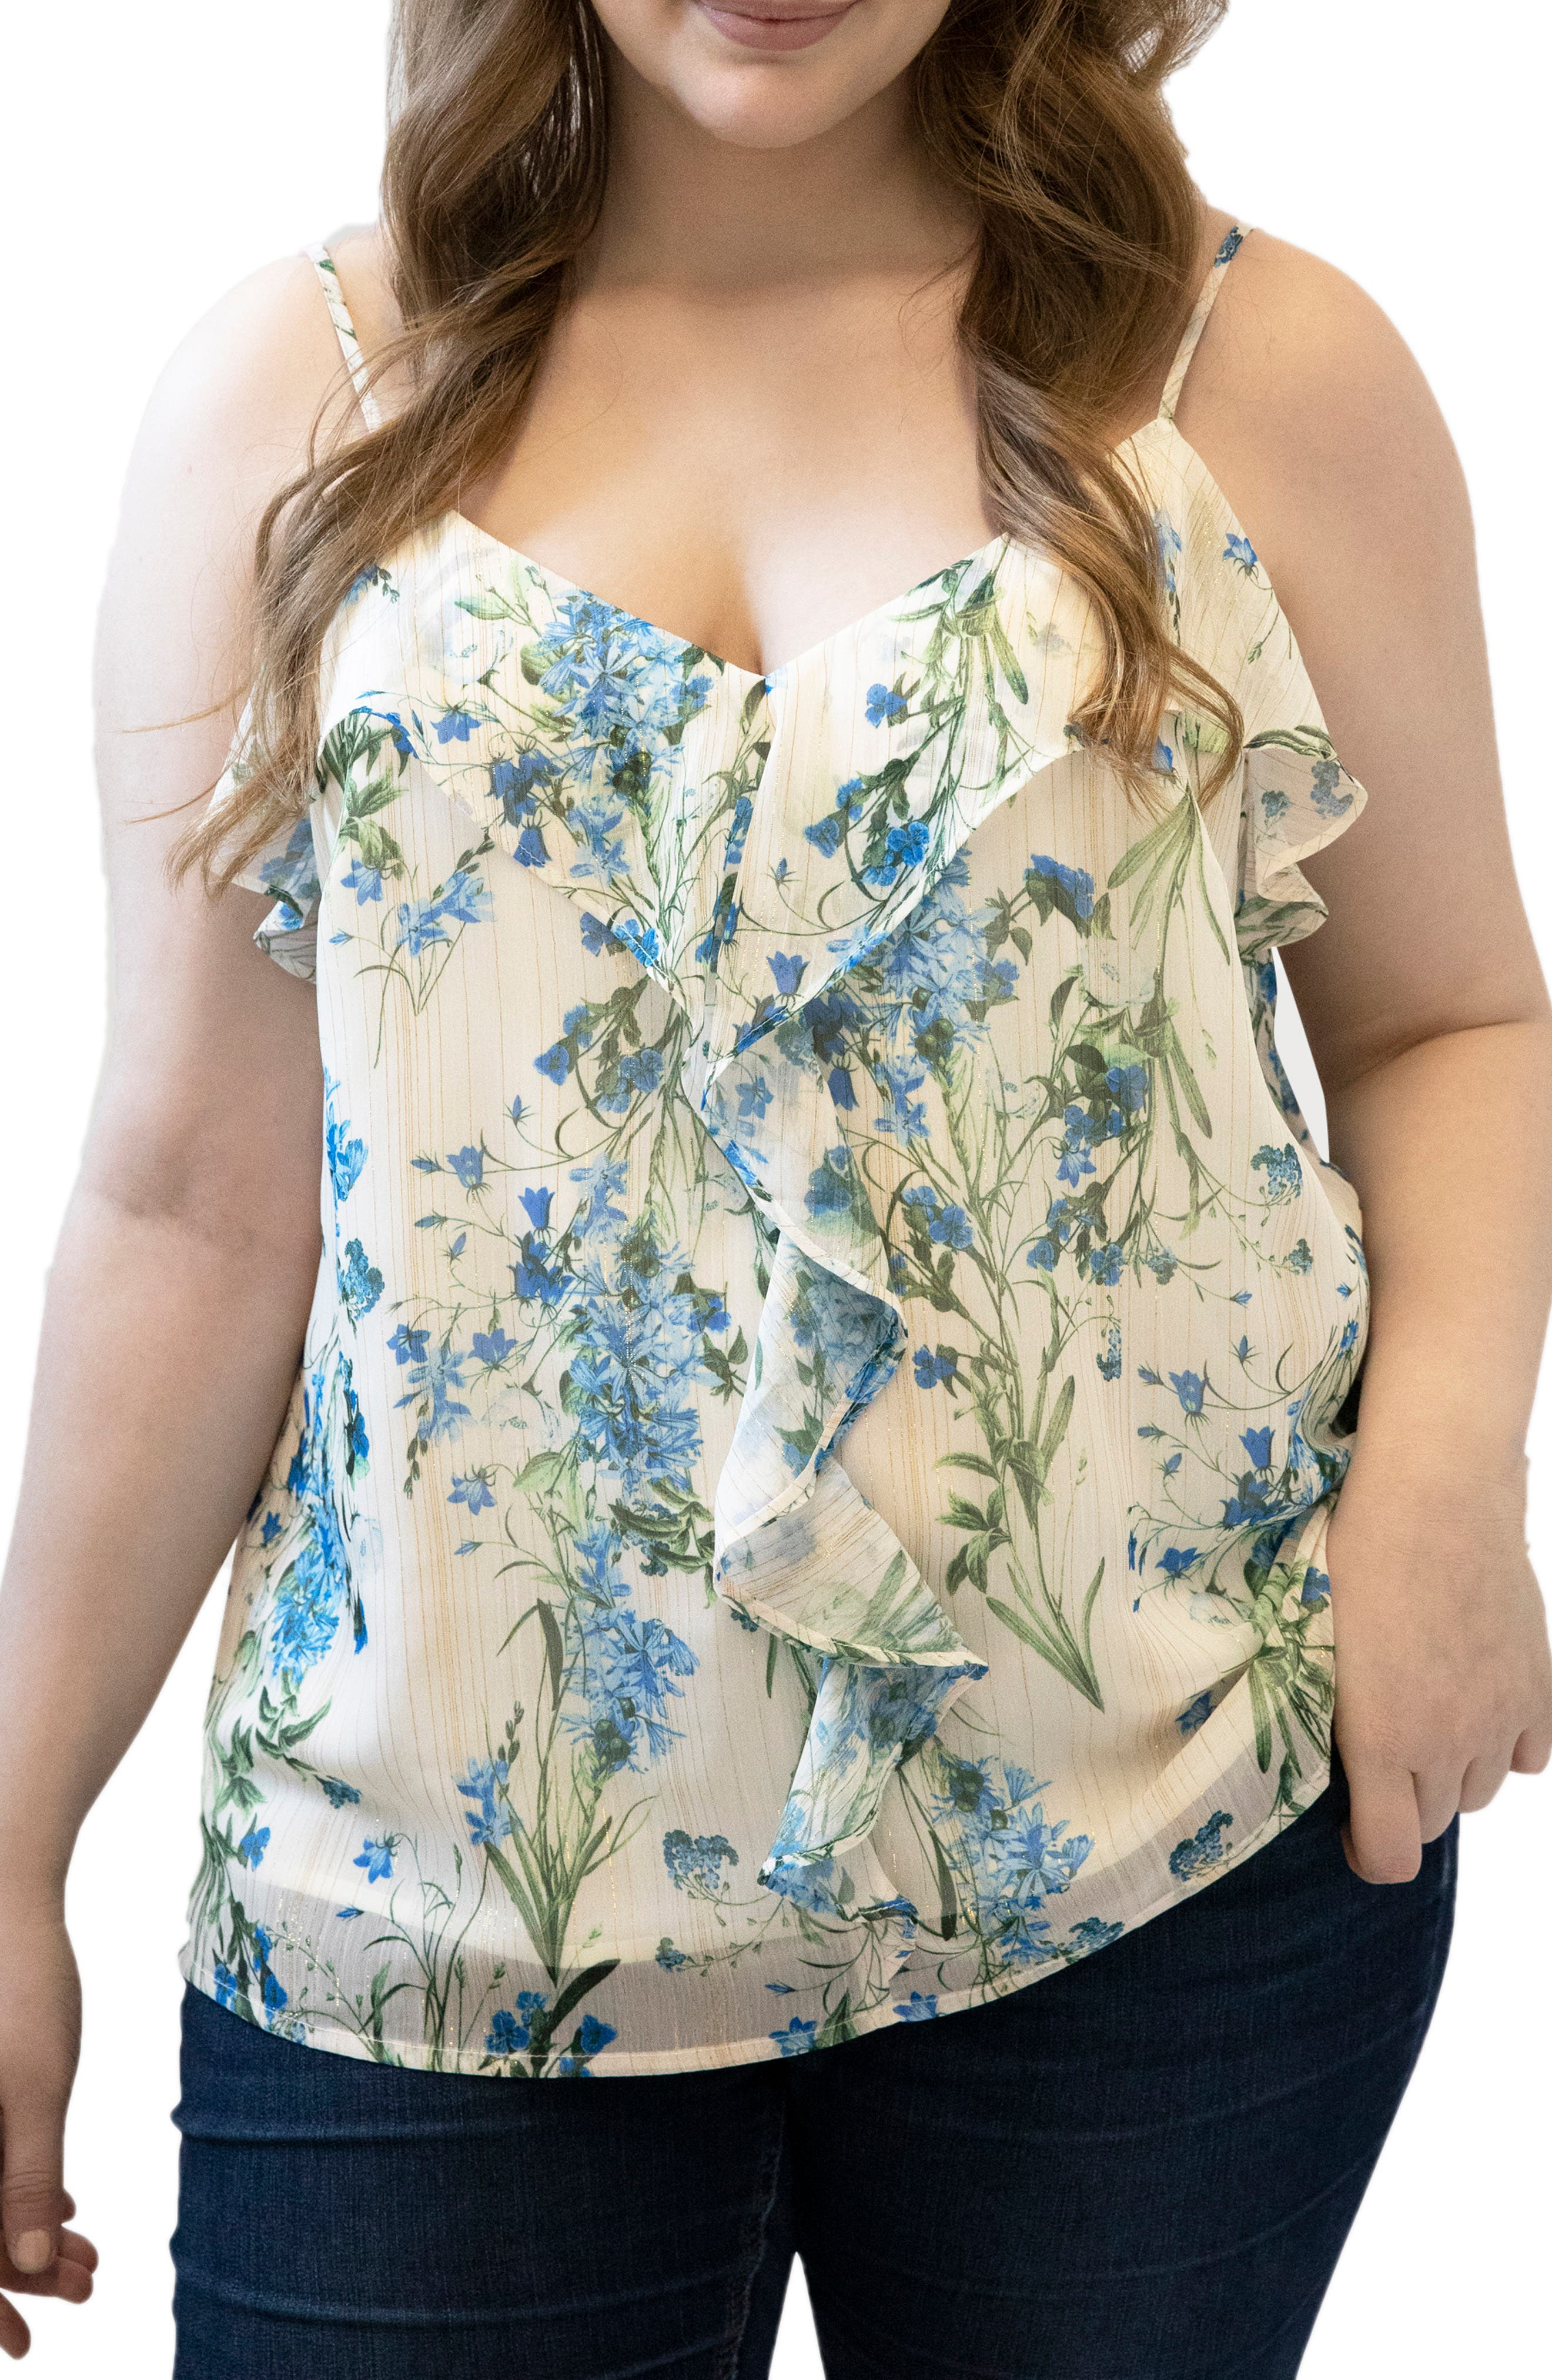 Floral Print Ruffle Camisole